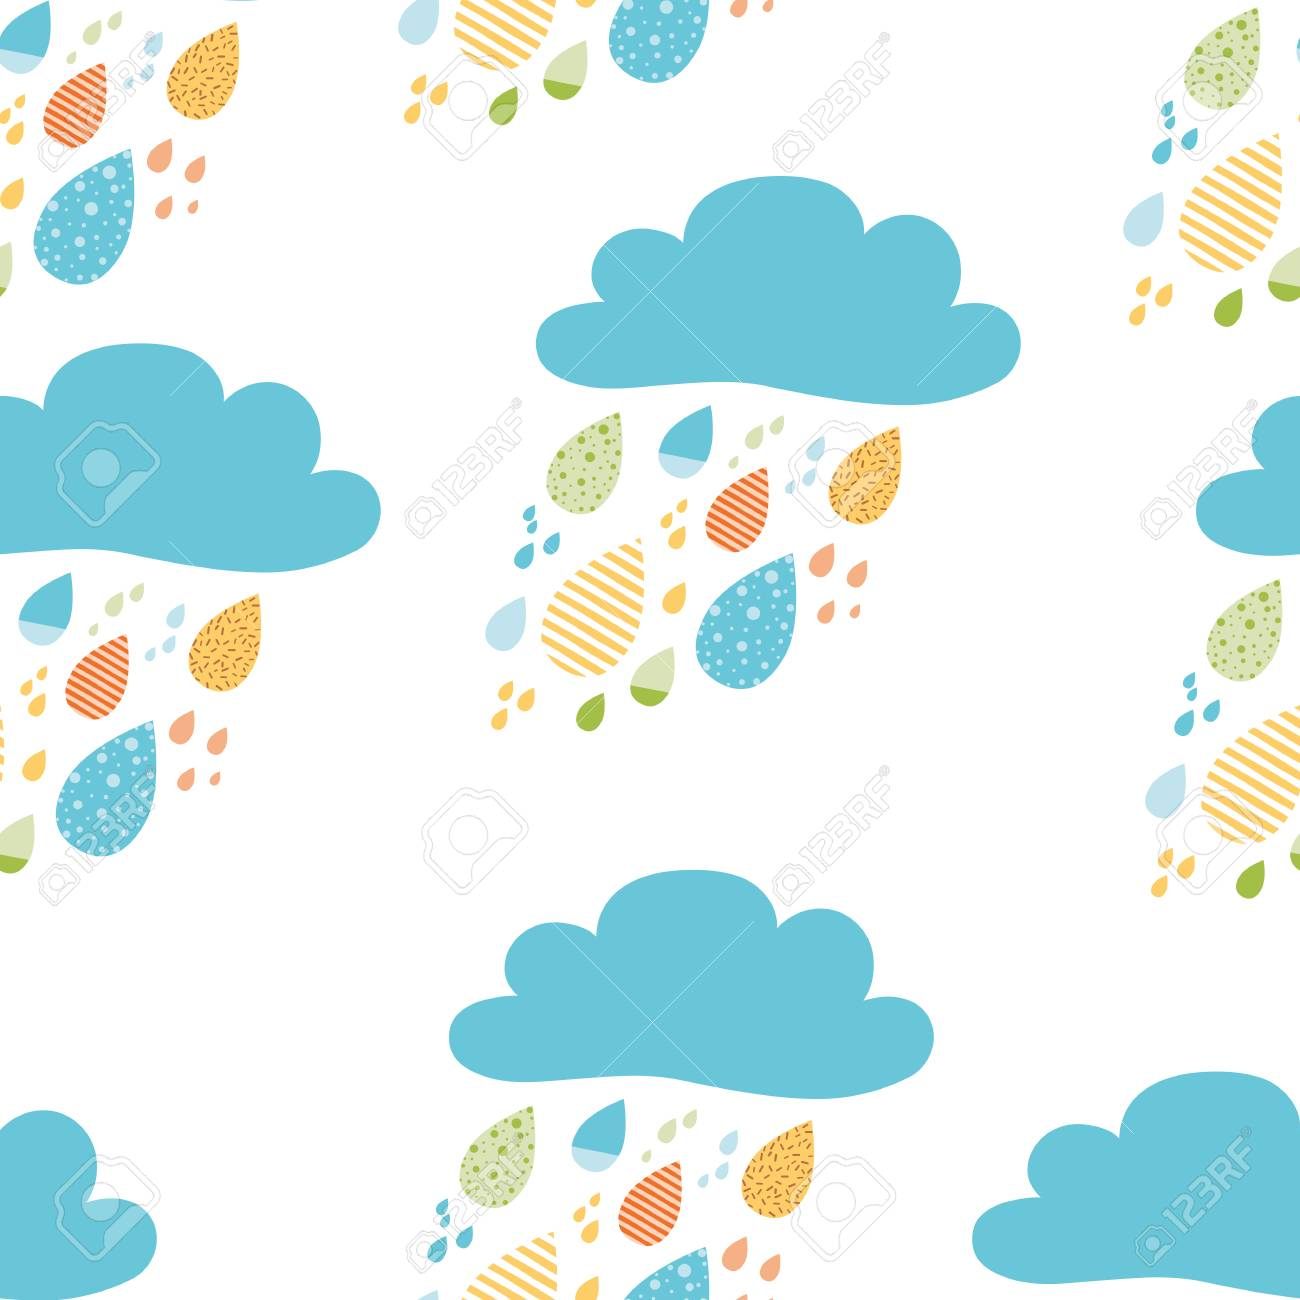 Funny colorful drops of rain clouds Vector autumn seamless pattern